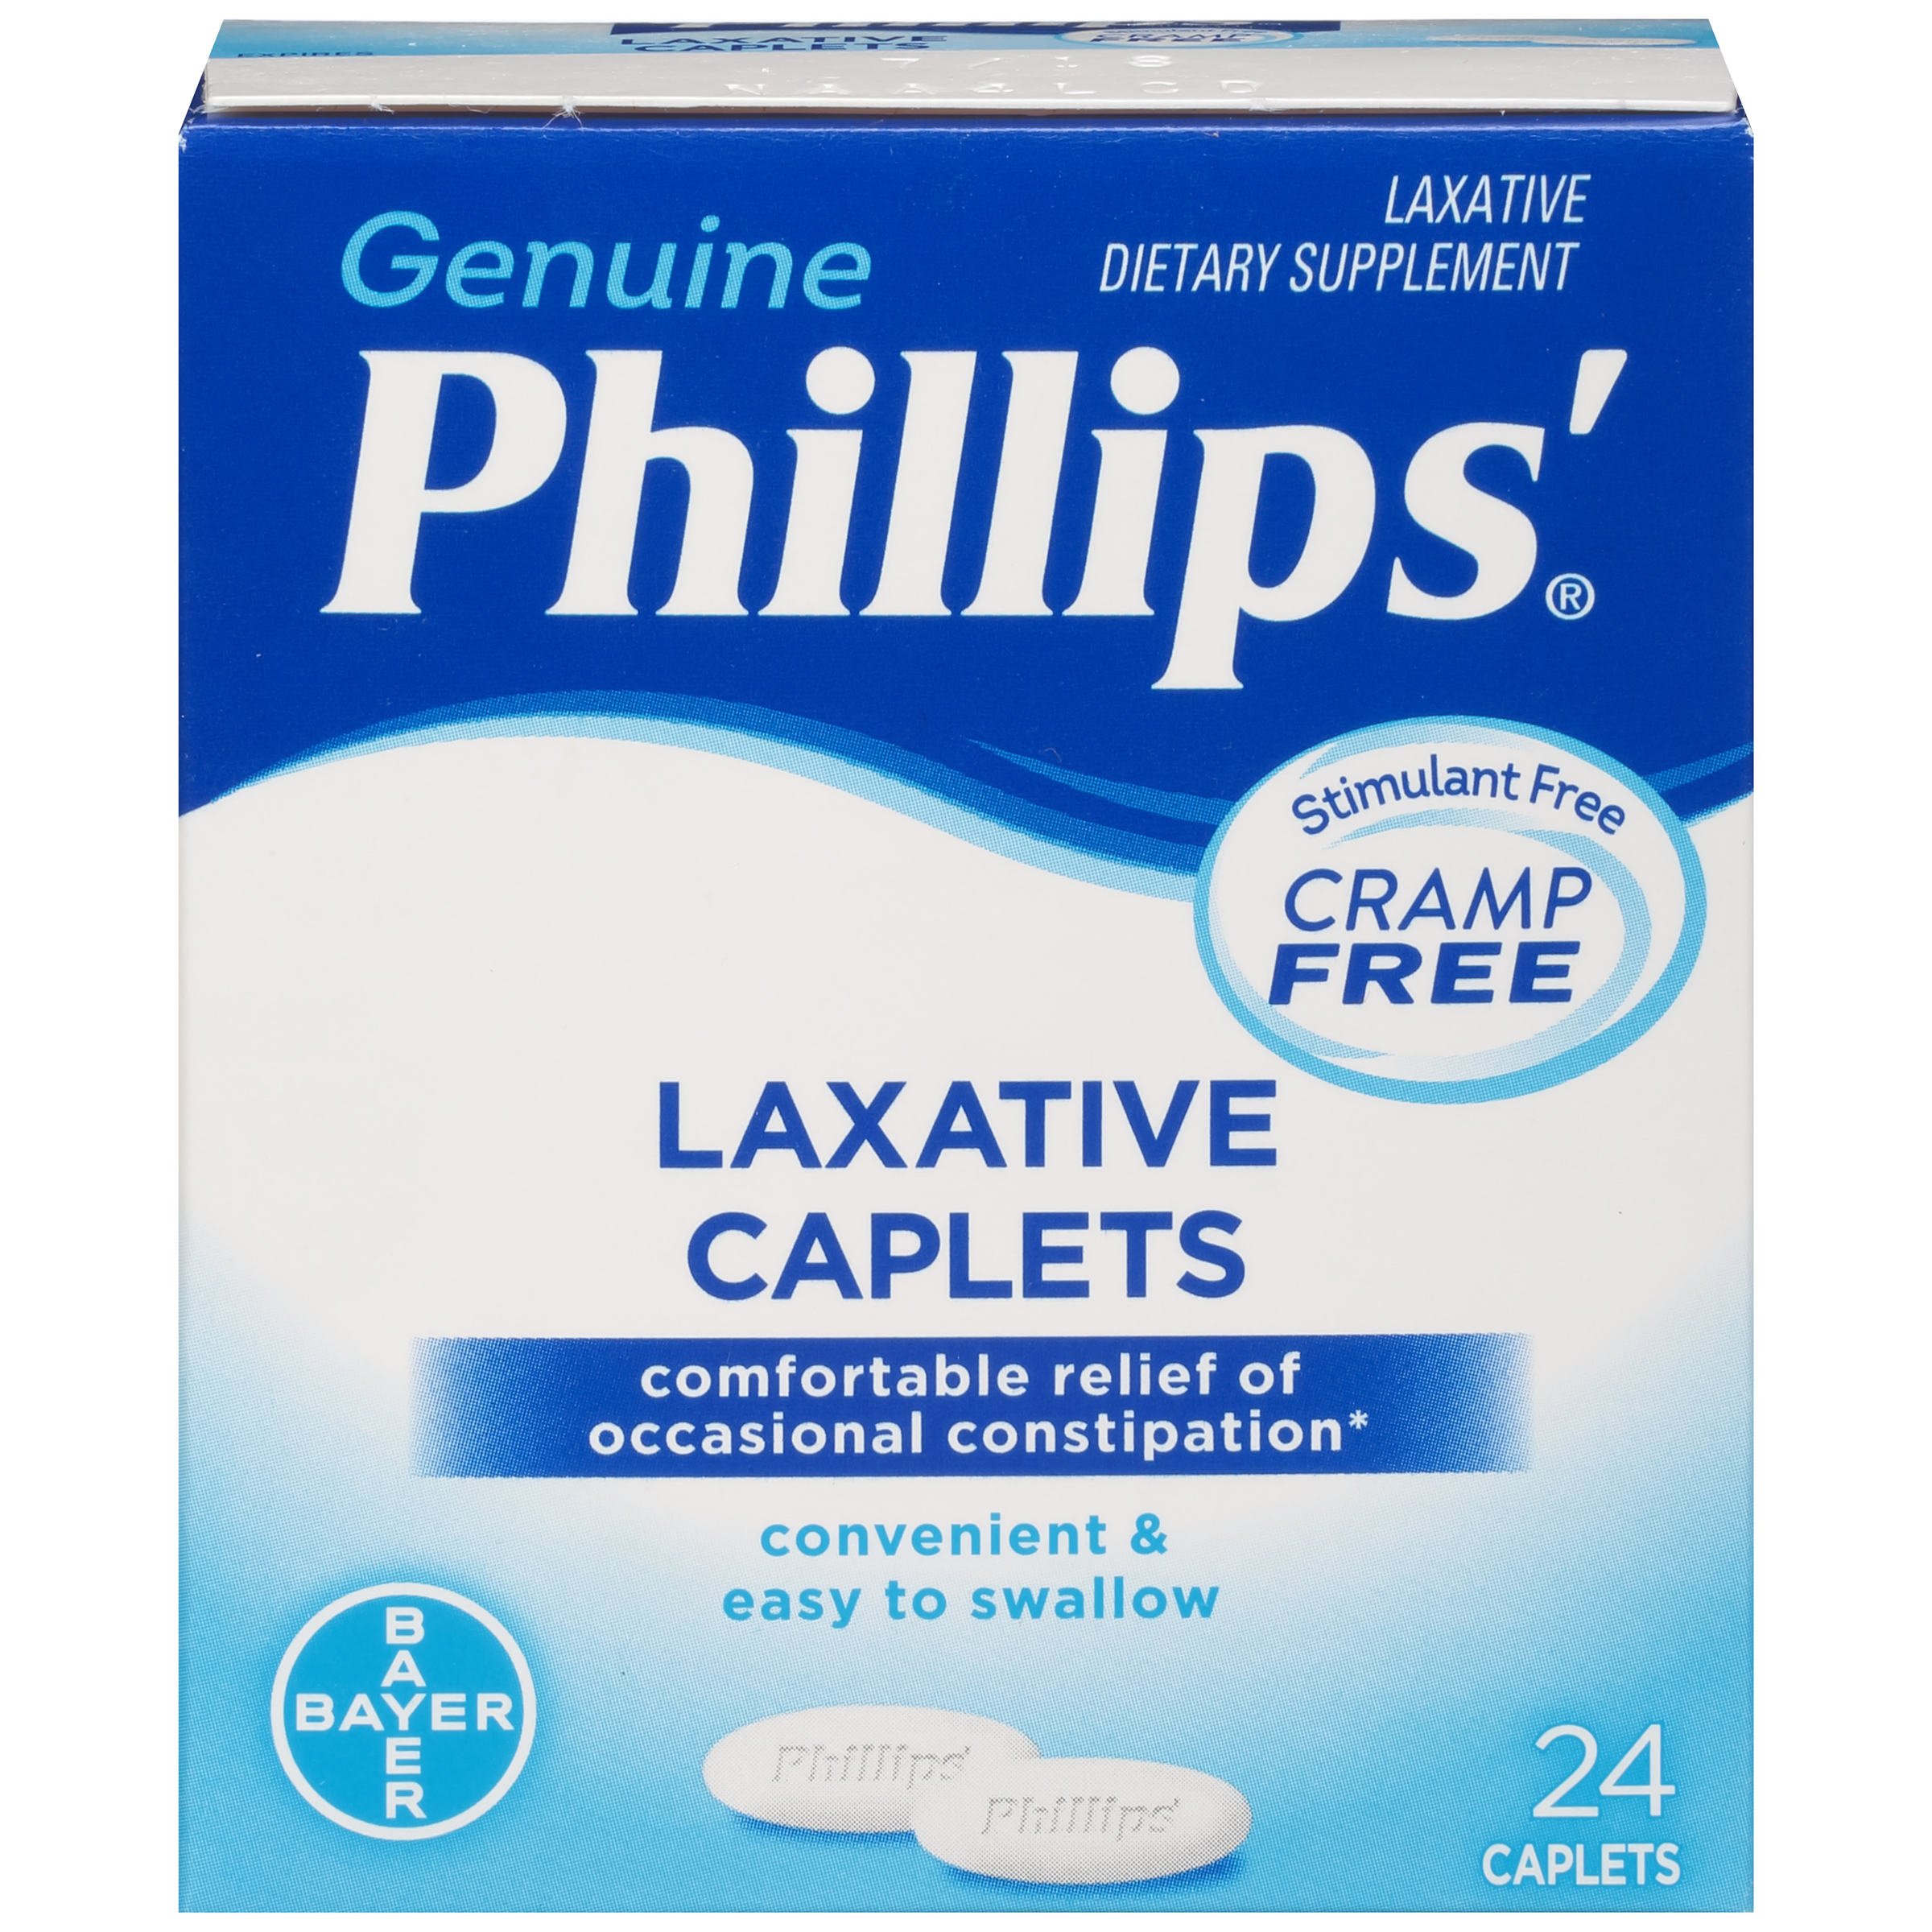 Phillips' Laxative Dietary Supplement Caplets, 24 Count